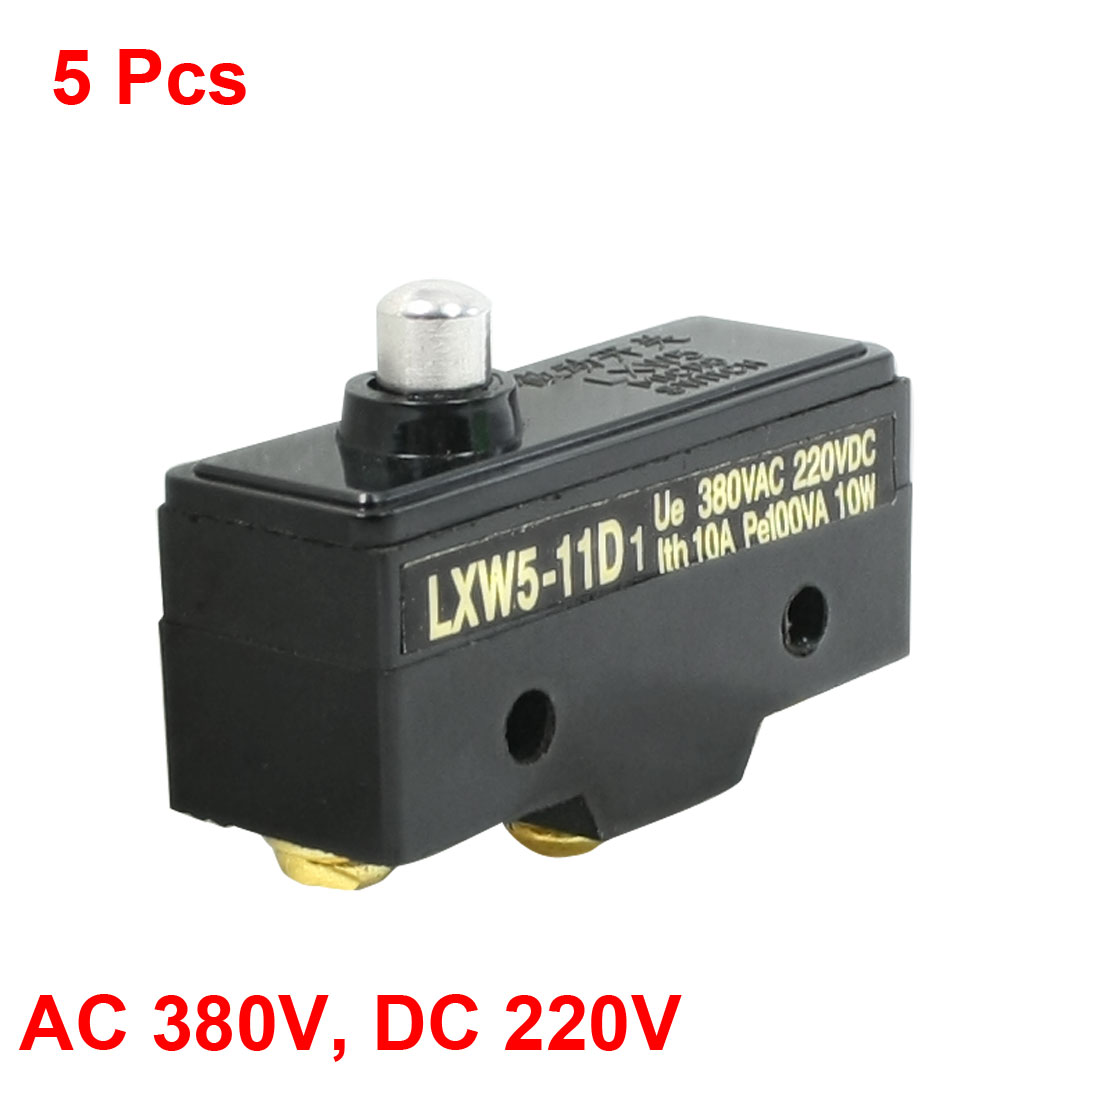 5 Pcs LXW5-11D1 Short Press Plunger Momentary Limit Micro Switch 380VAC 10A